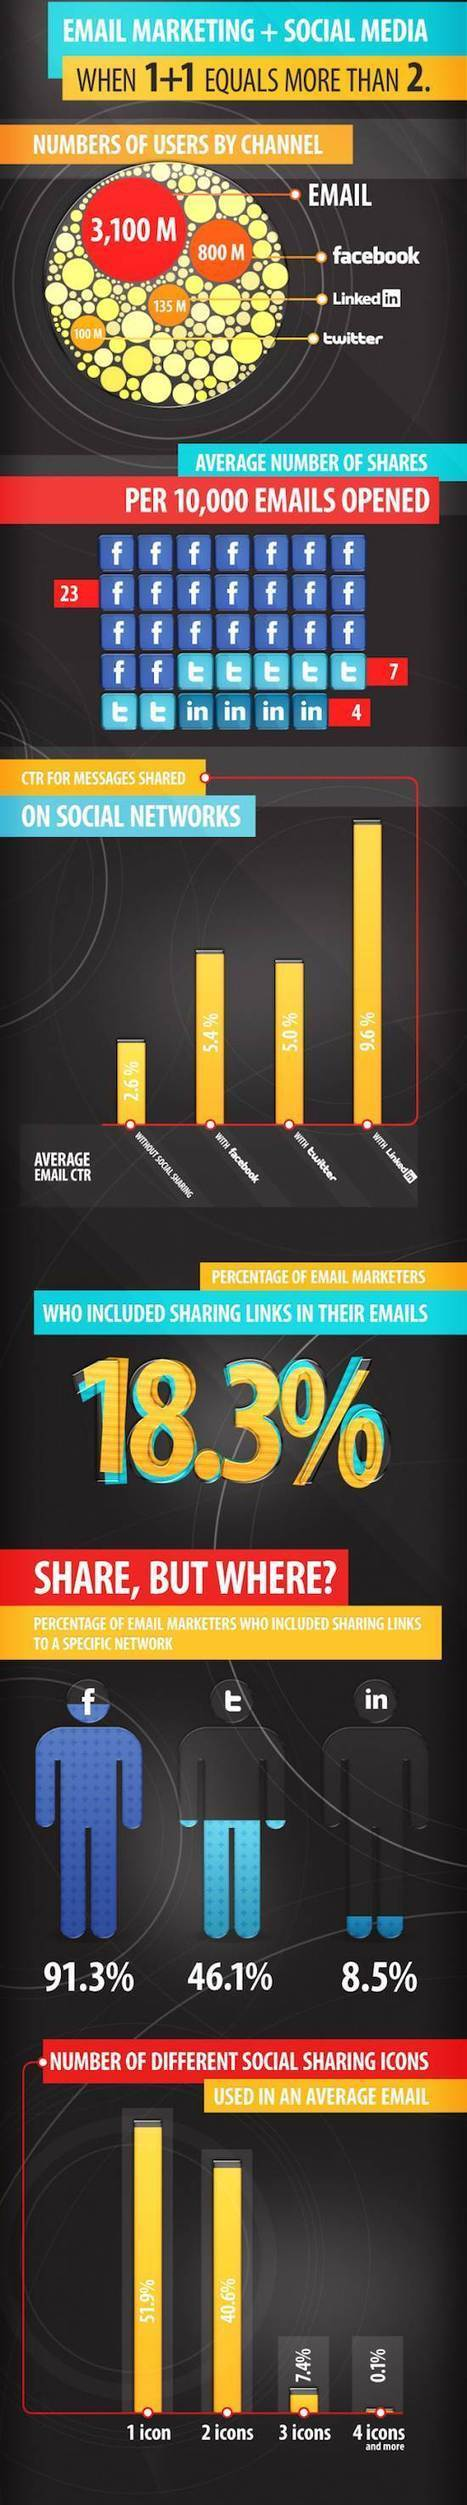 Social Sharing and Email Marketing - Infographic | Social Media Butterflies | Scoop.it